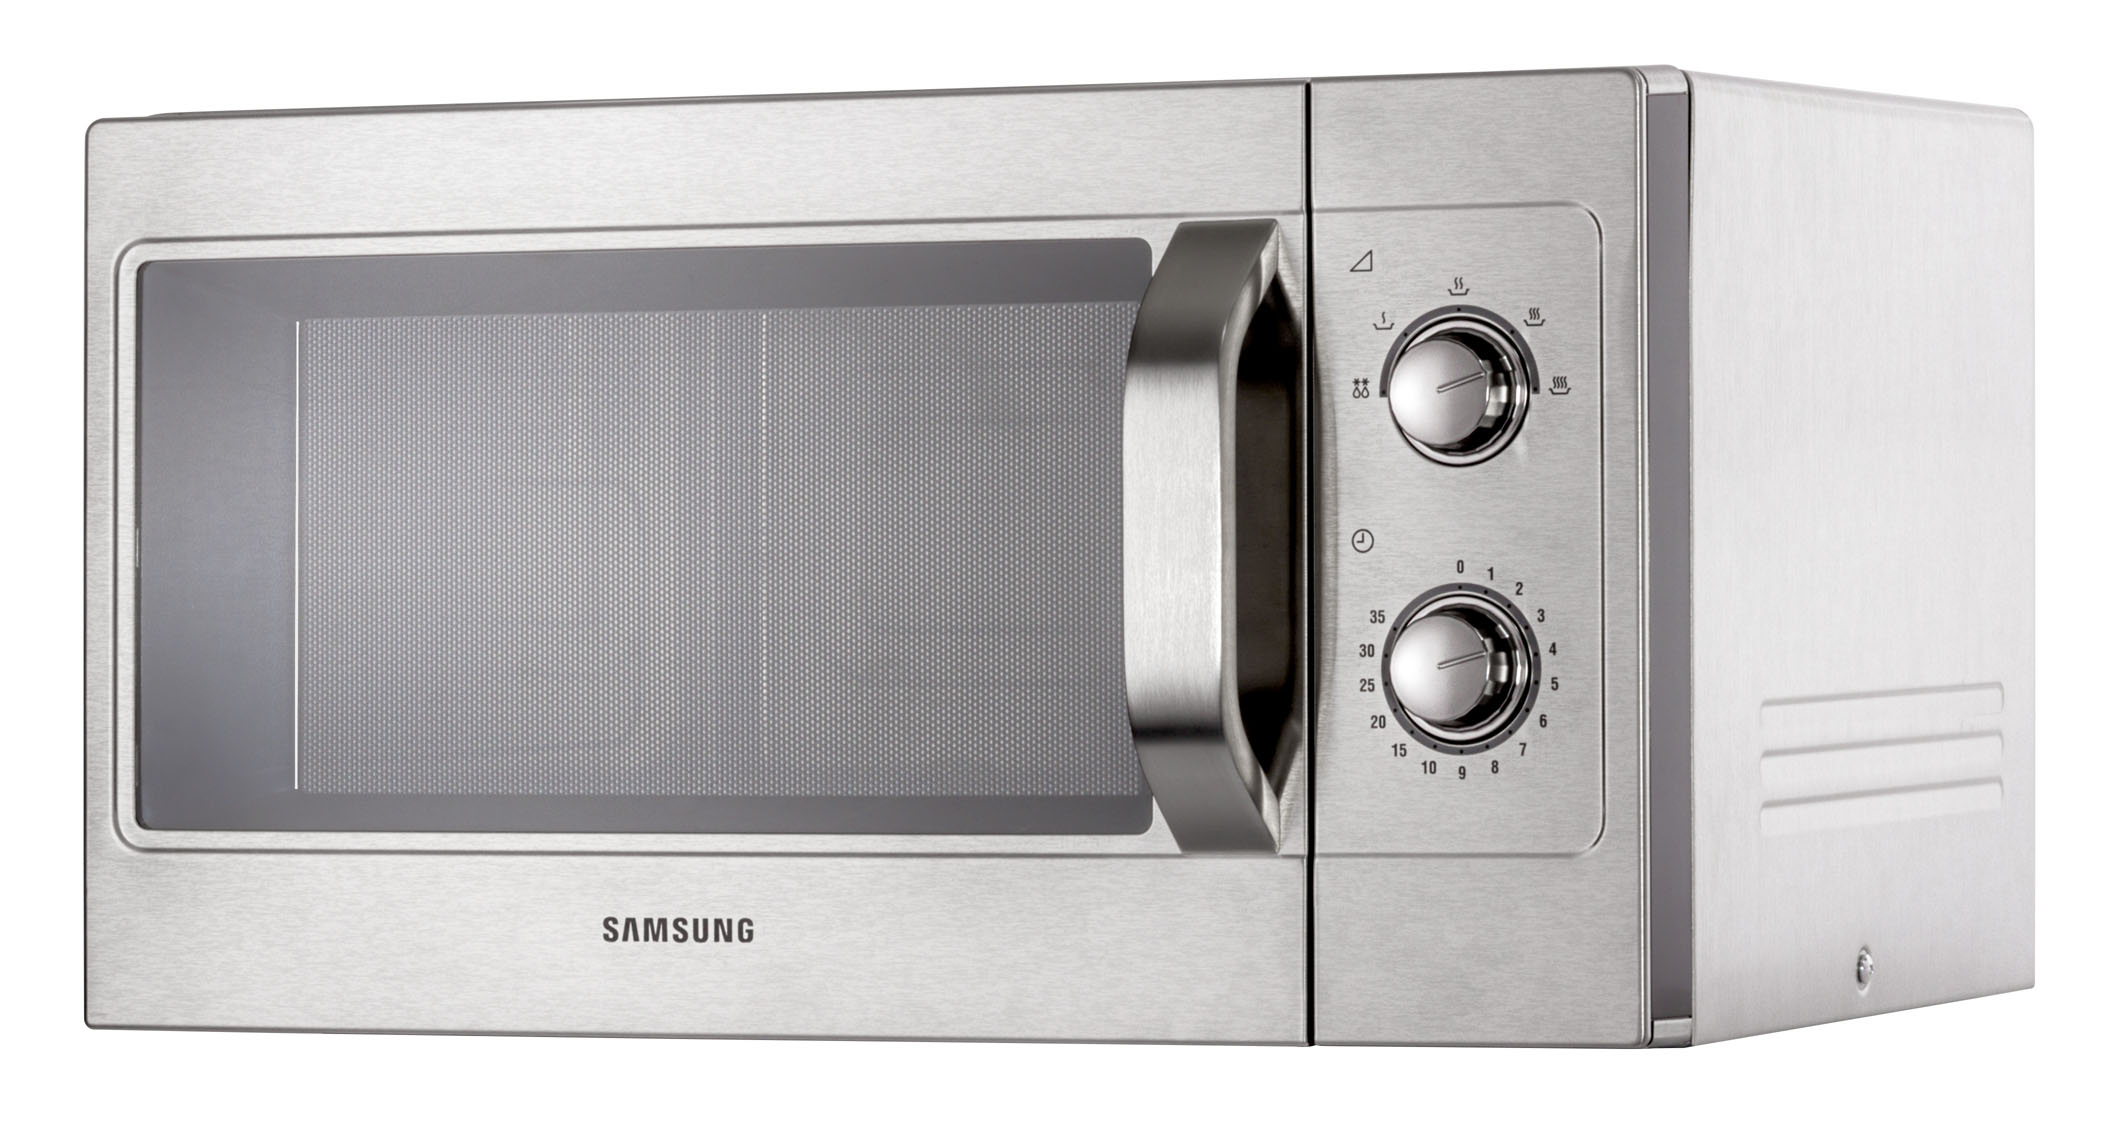 Samsung S Snackmate Manual Commercial Microwave Oven